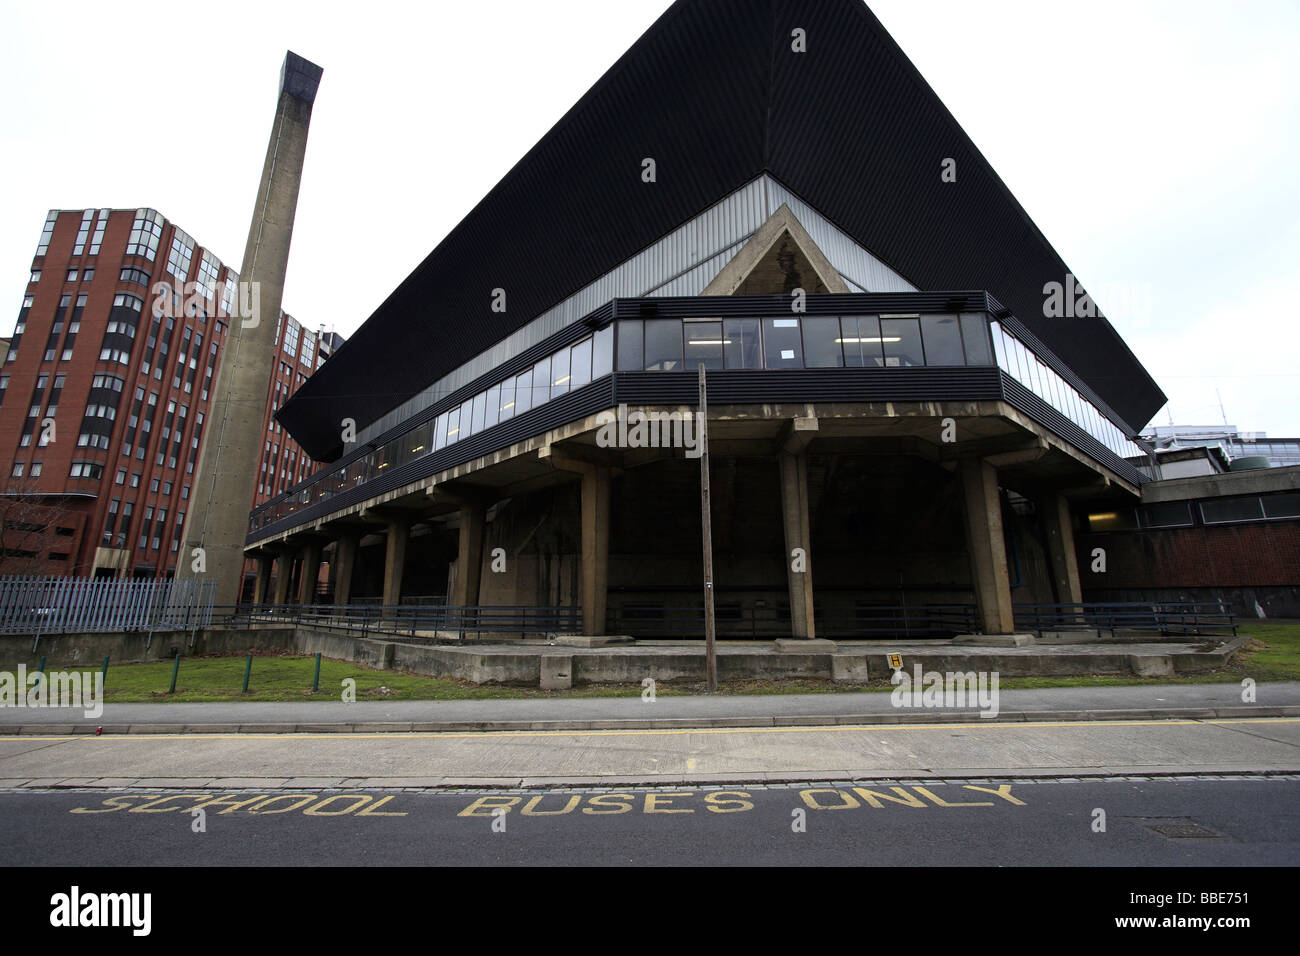 Leeds International Pool High Resolution Stock Photography And Images Alamy